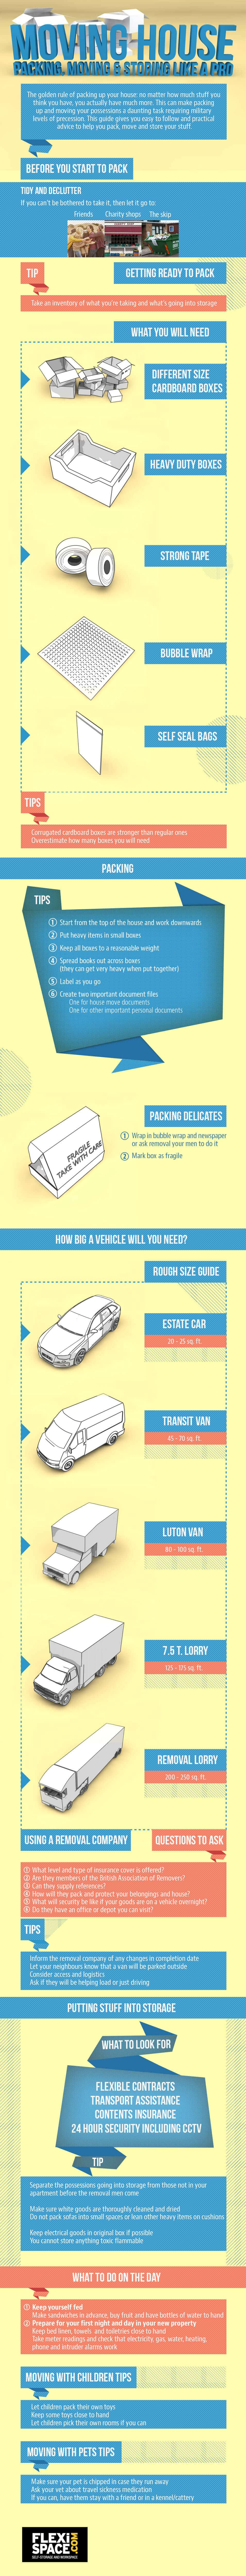 moving house and using self storage infographic